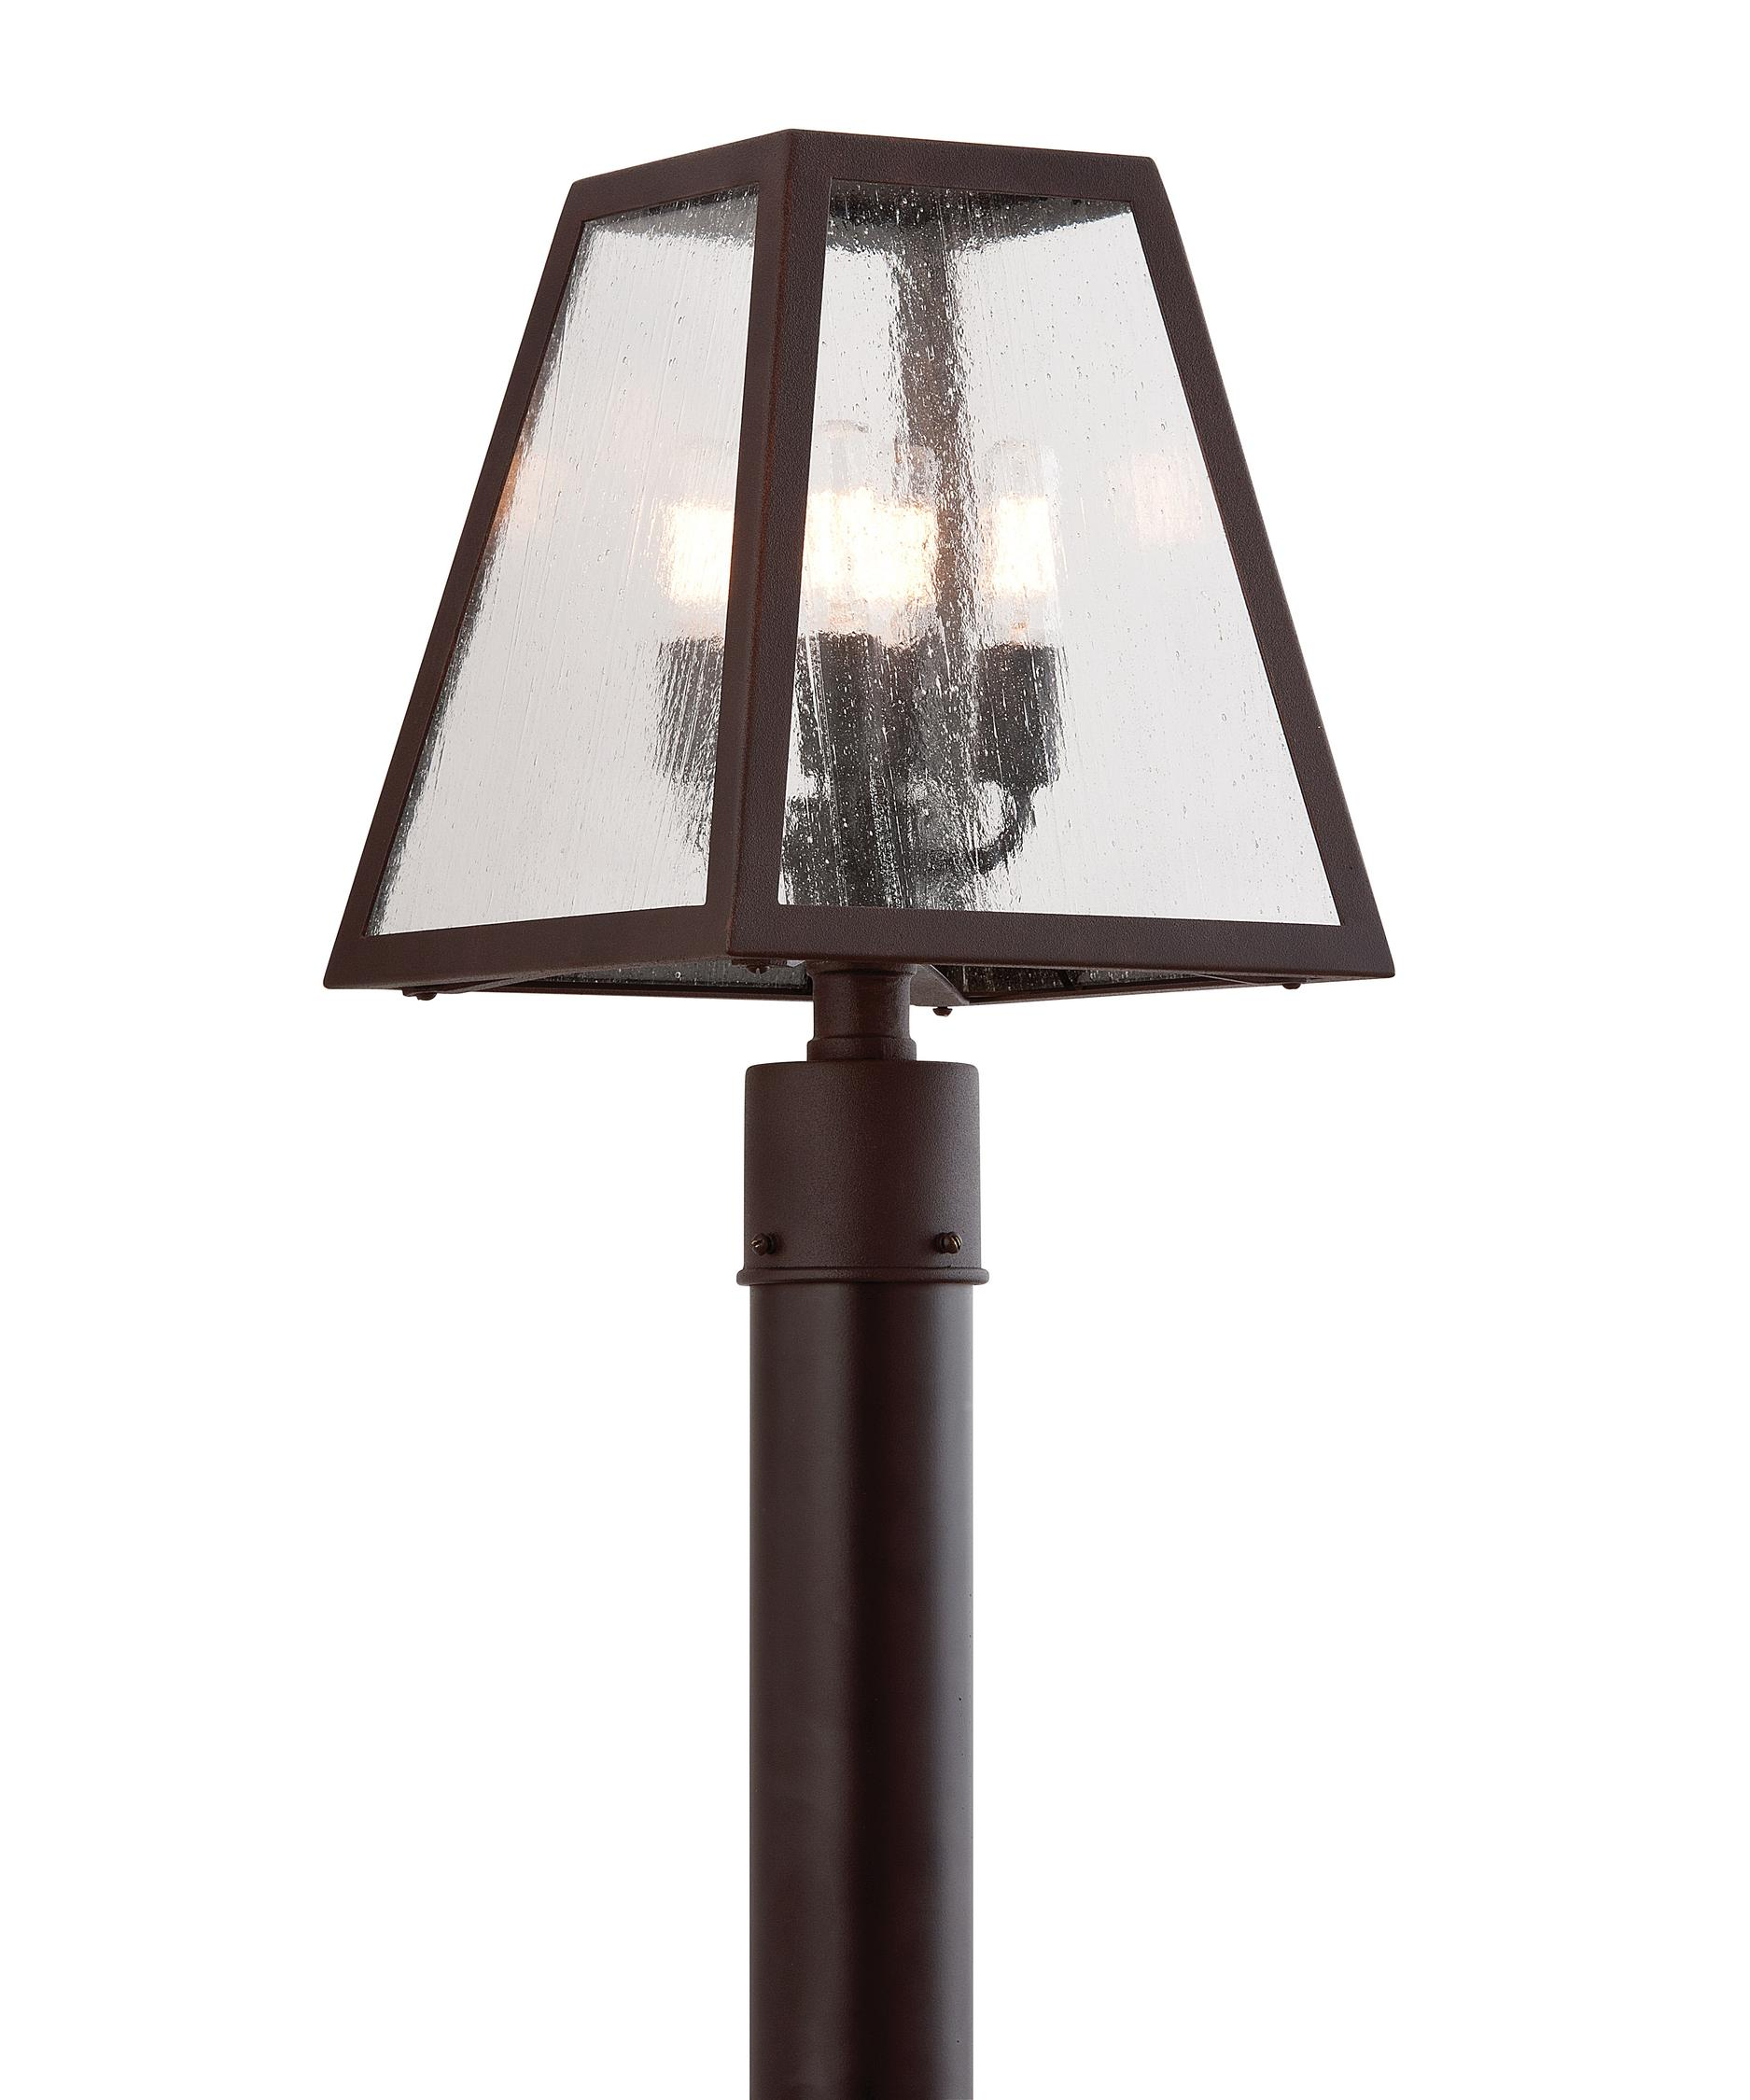 4 light outdoor post lamp photo - 4